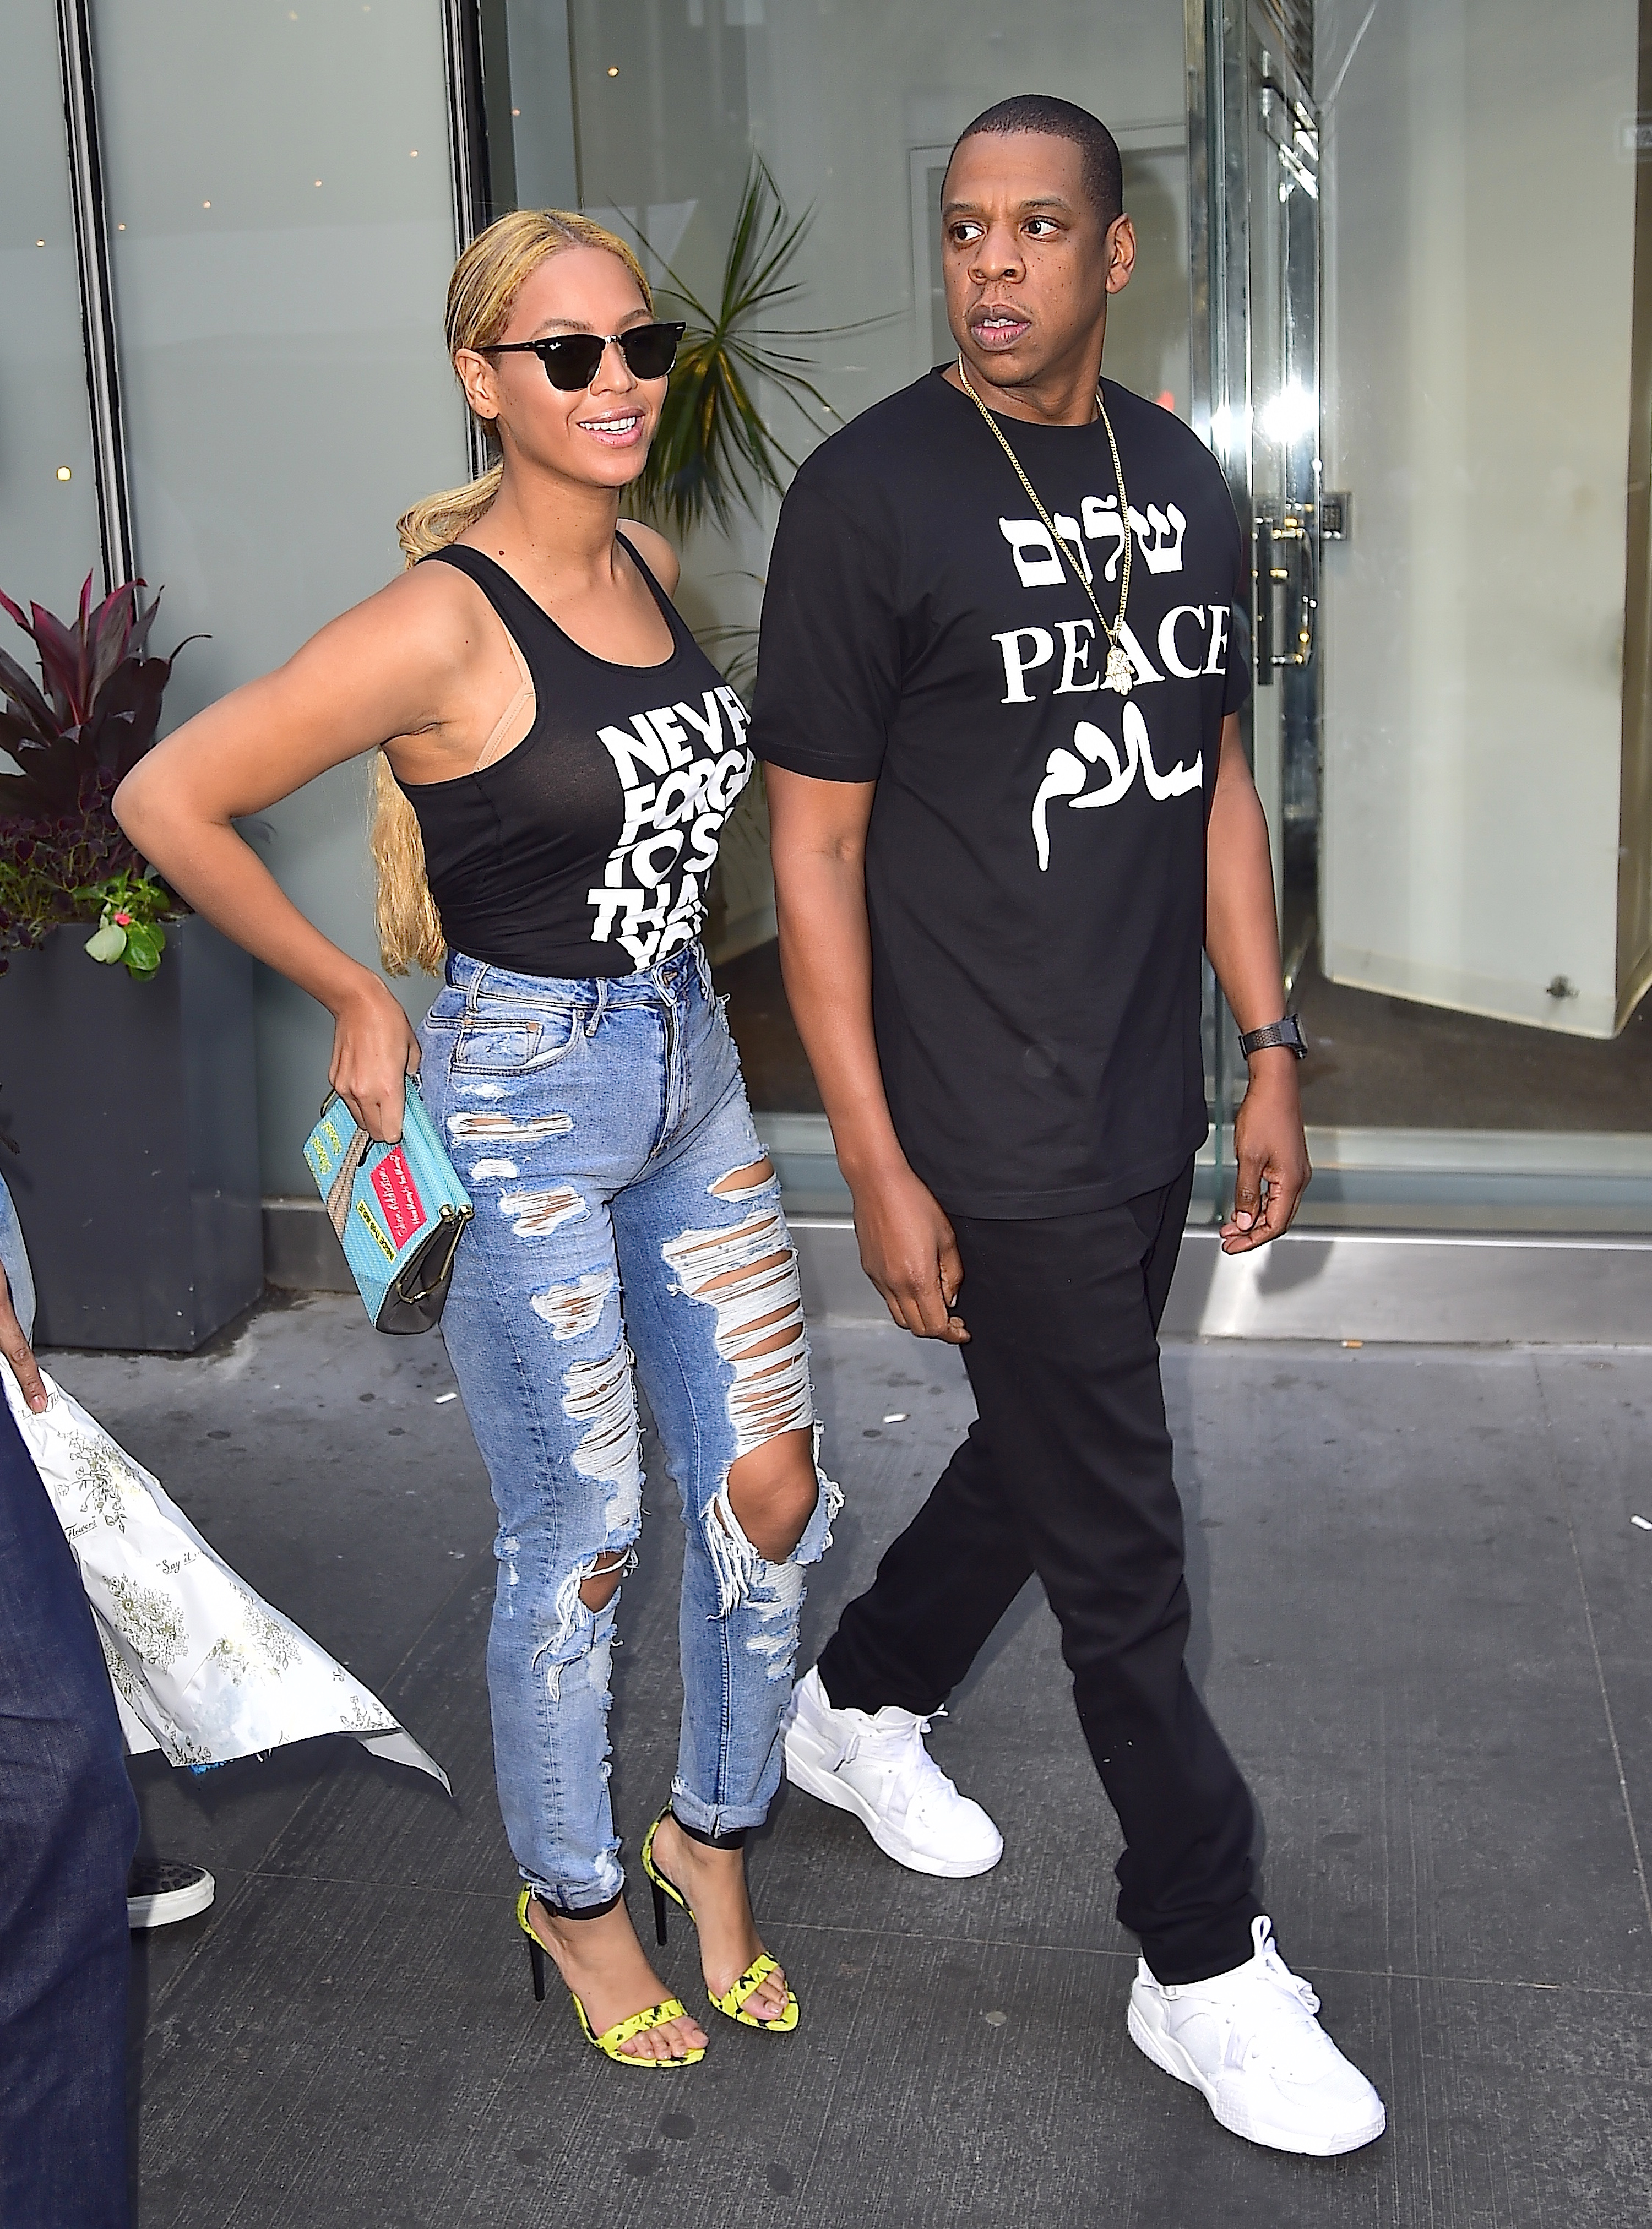 Beyonce and Jay Z are seen in Midtown on May 11, 2015 in New York City. (Photo by Alo Ceballos/GC Images)